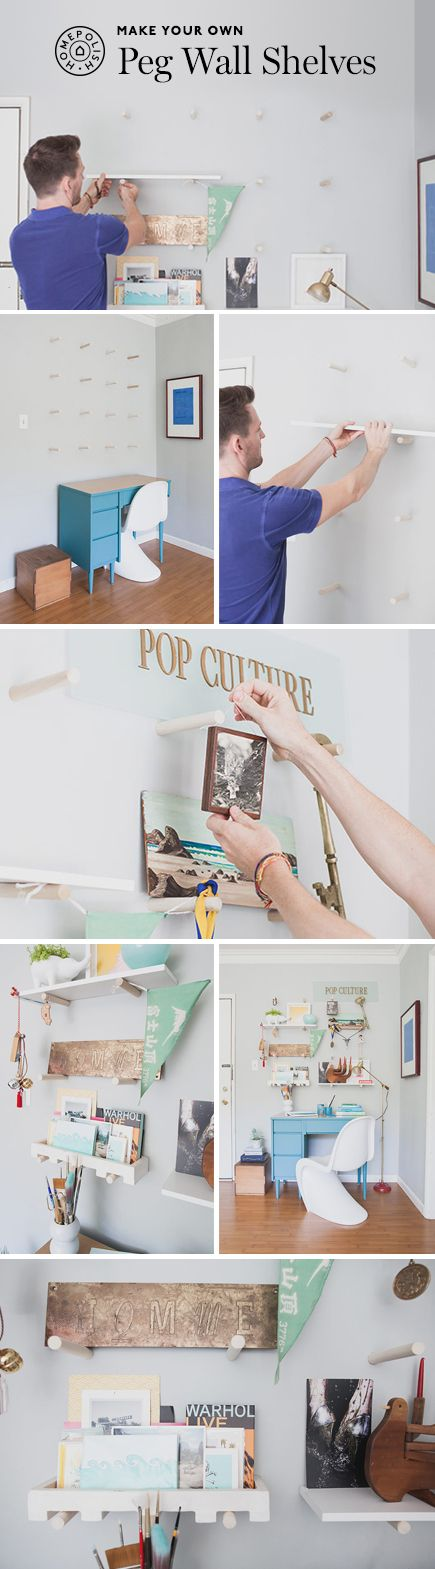 Transcend traditional shelving and transform your space with a DIY Peg Wall Shelf!